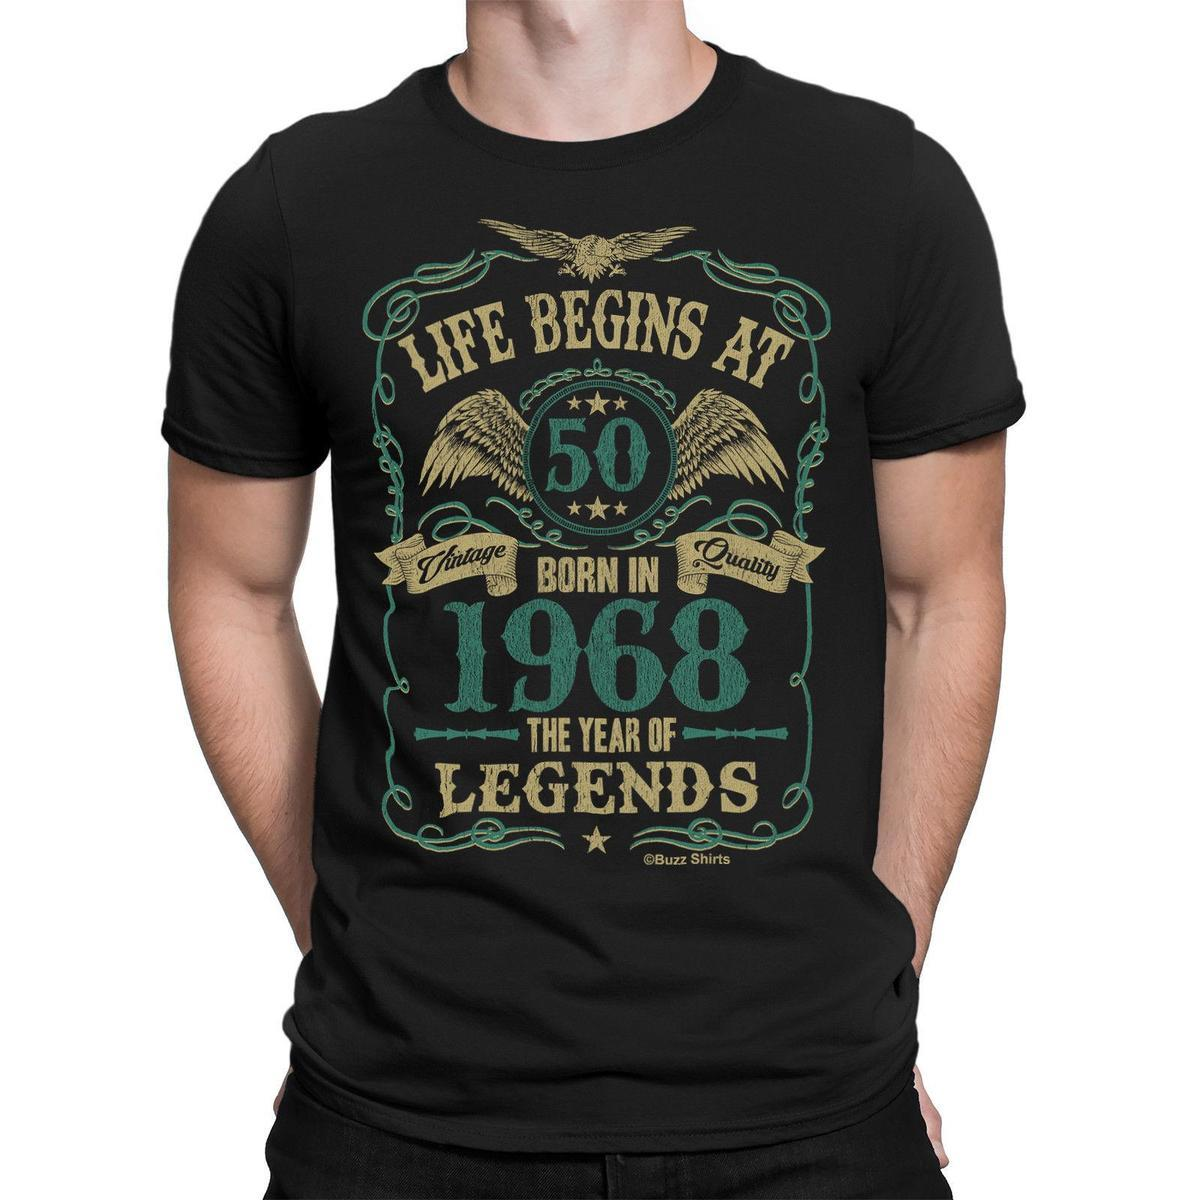 21bd9aed Life Begins At 50 Mens T Shirt BORN In 1968 Year Of Legends 50th Birthday  Gift Purchase T Shirts Silly T Shirt From Yuxin004, $13.8| DHgate.Com